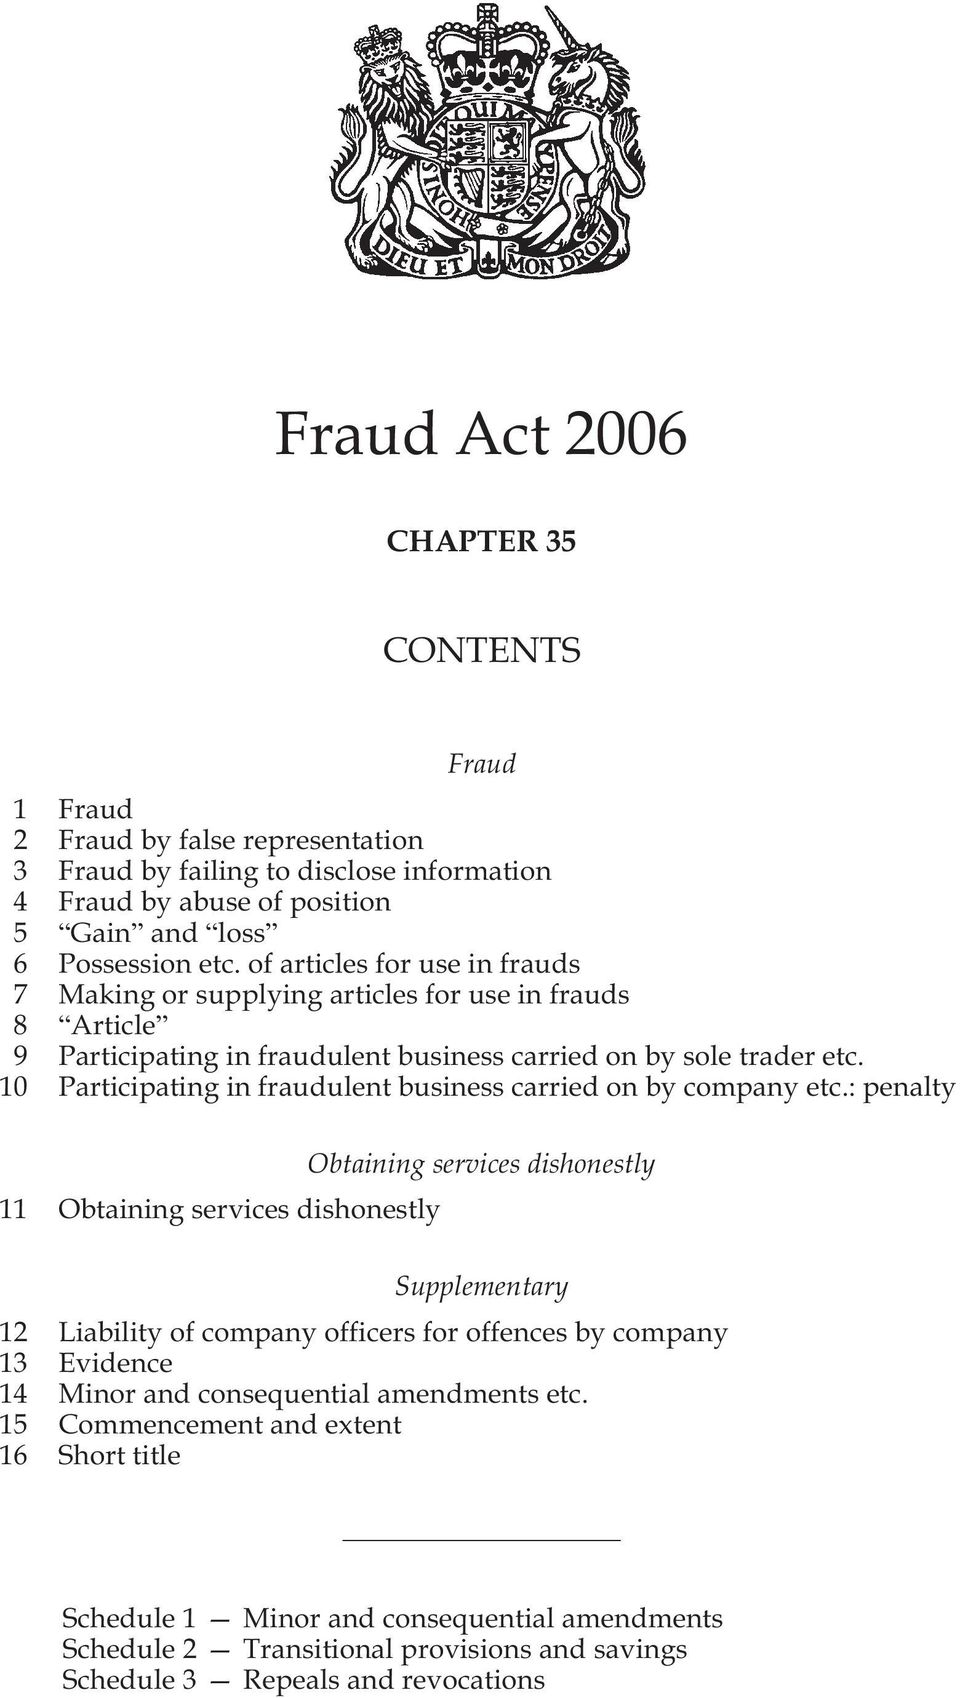 10 Participating in fraudulent business carried on by company etc.